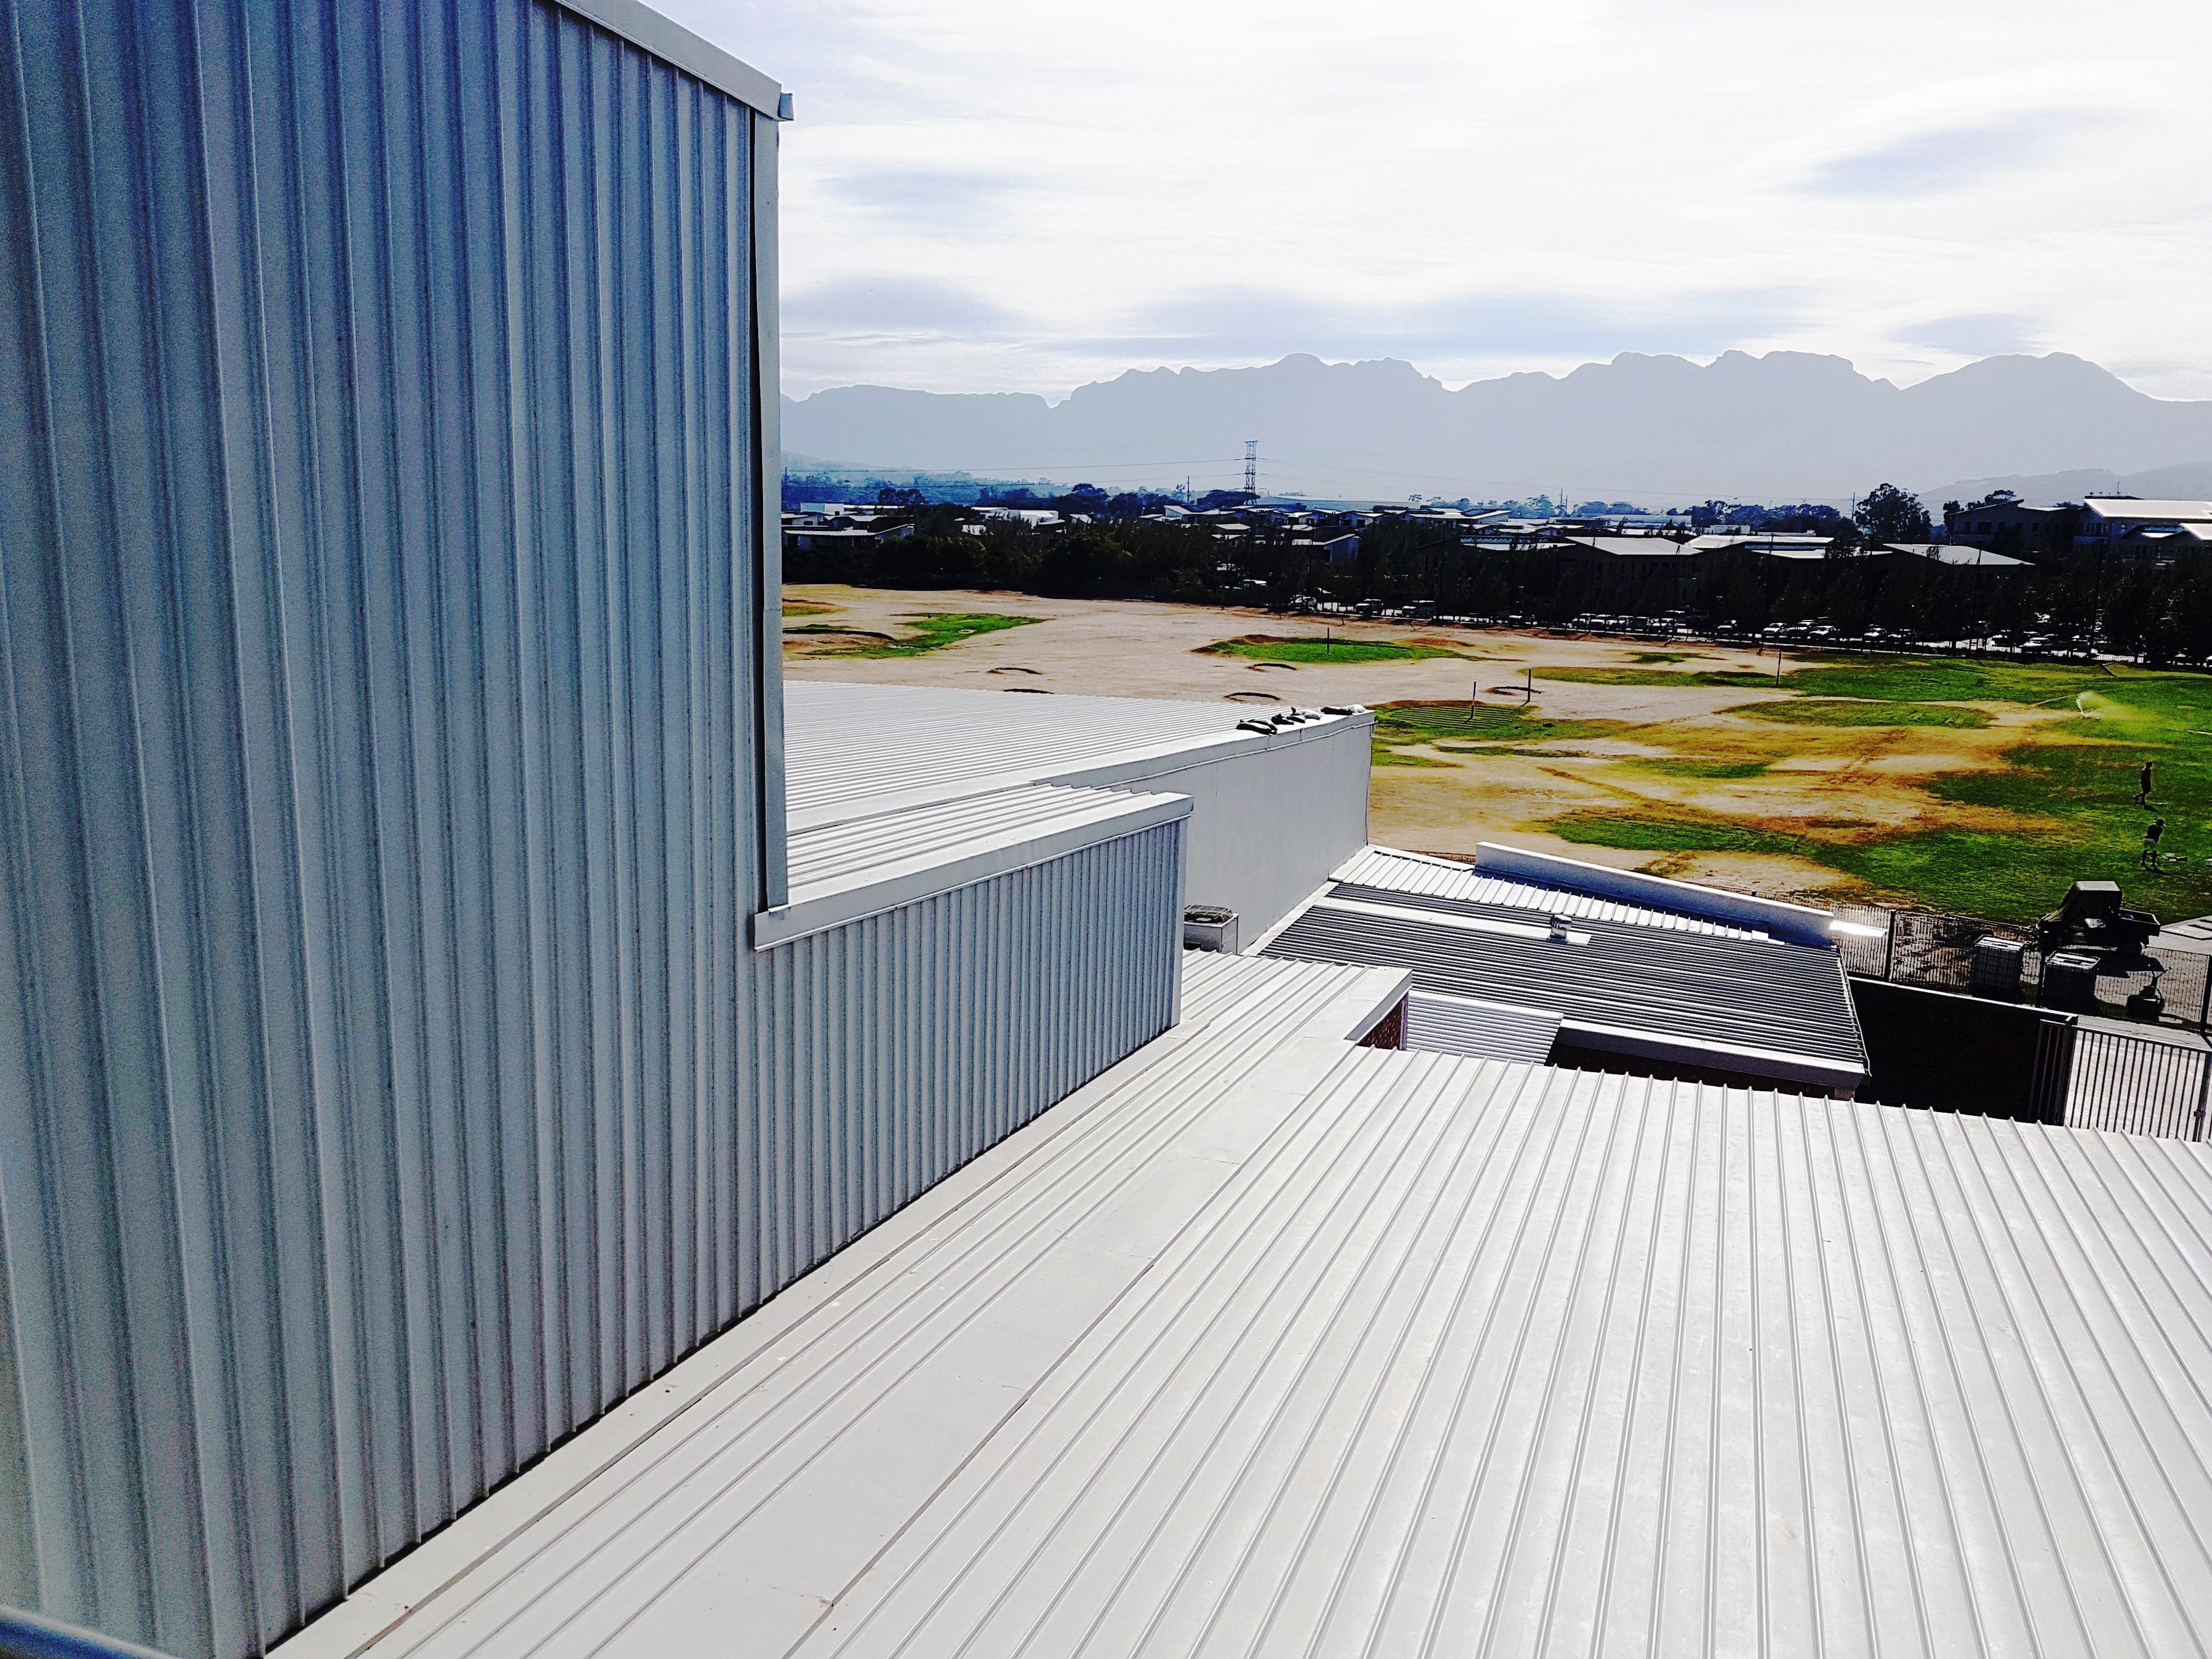 3 Super Genius Ideas Roofing Terrace Garden Shed Roofing Carport Flat Roofing Types Roofing Styles Ceilings Flat R Roof Architecture Patio Roof Modern Roofing